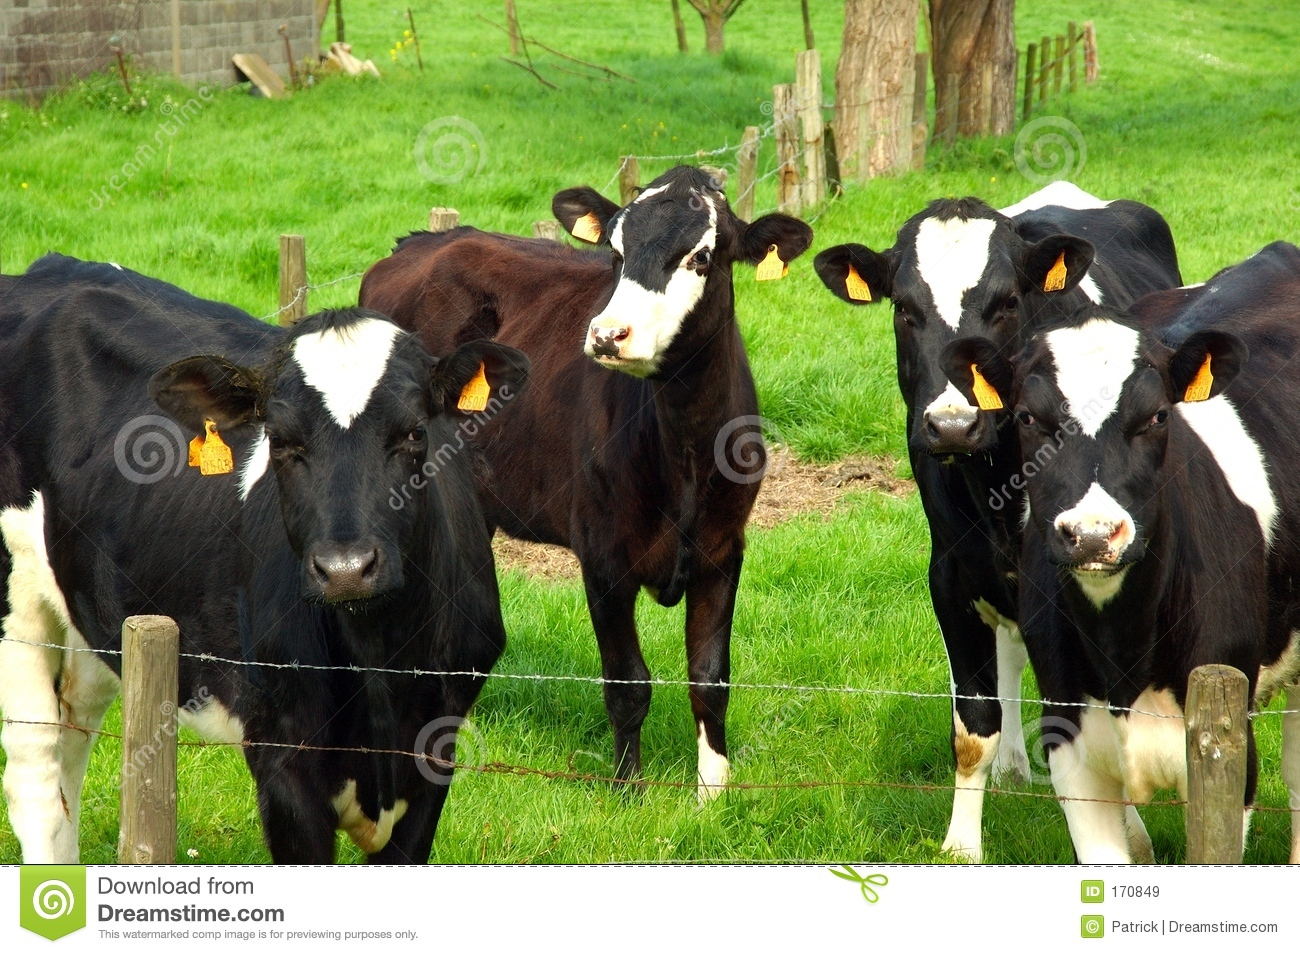 Cows in the meadow.